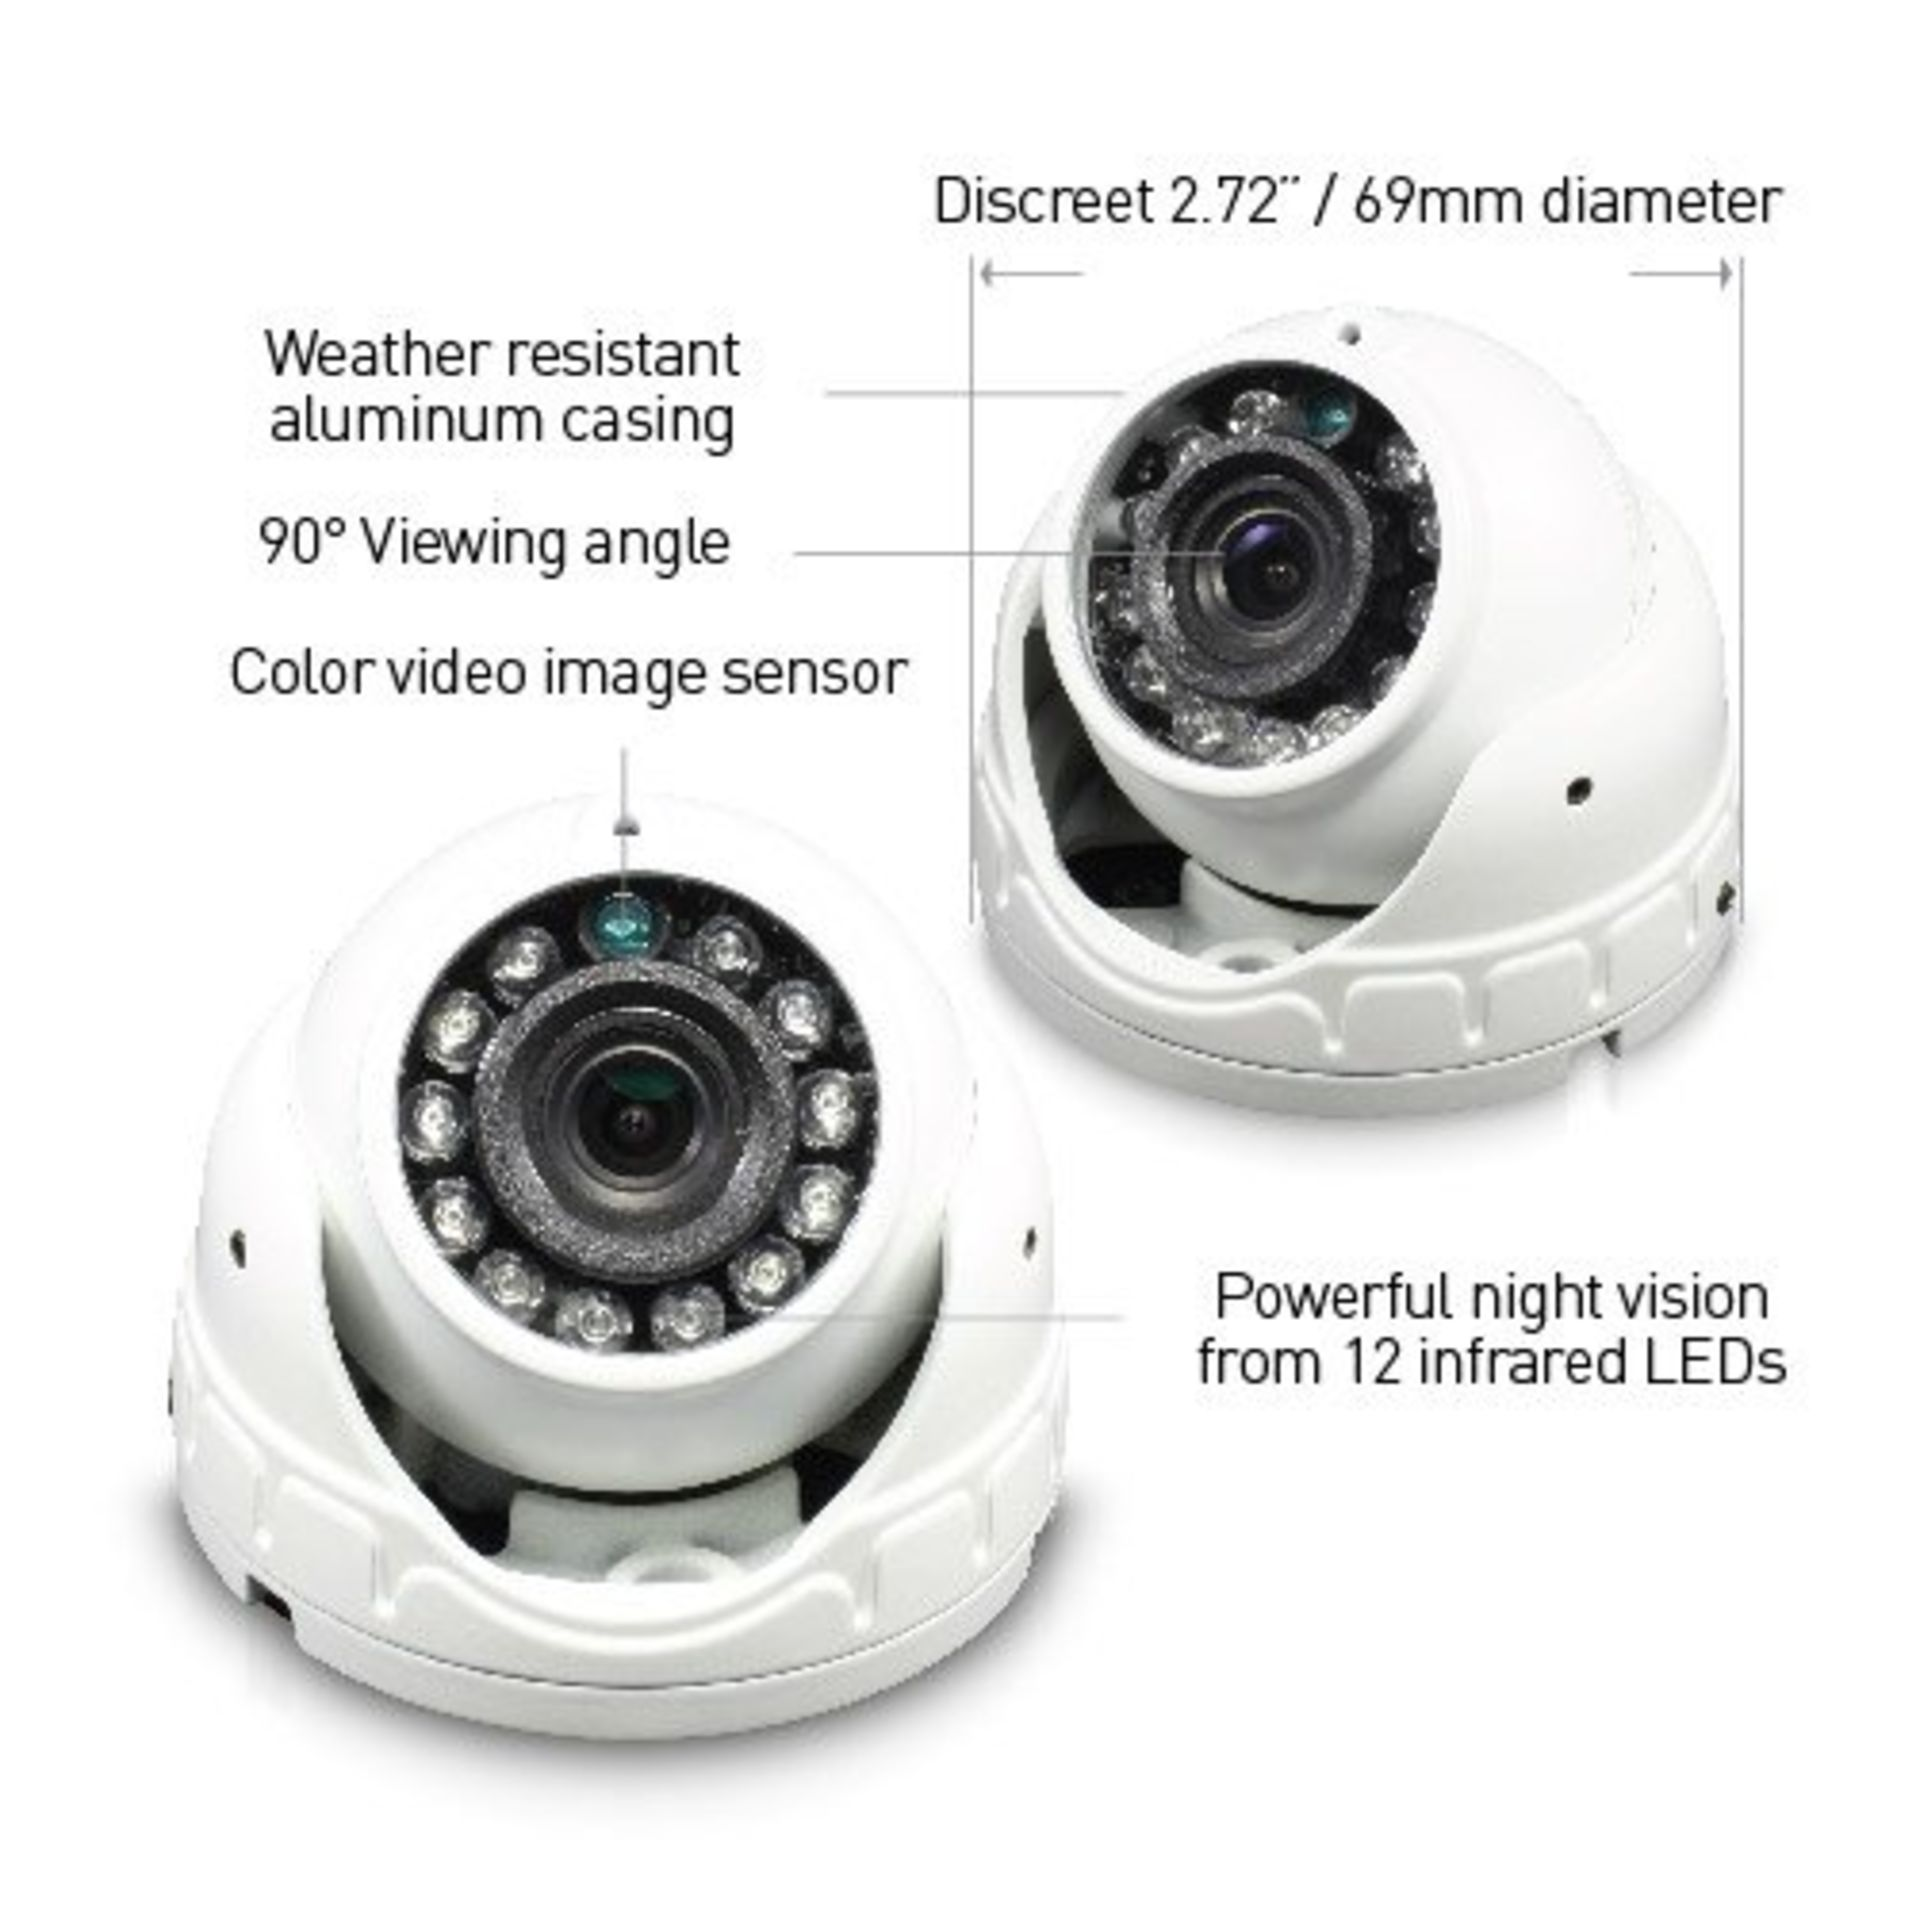 Lot 50016 - V Grade A/B Swann SW-1080FLD 1080P Dome Security Camera - Weather Resistant Casing- 90 degree